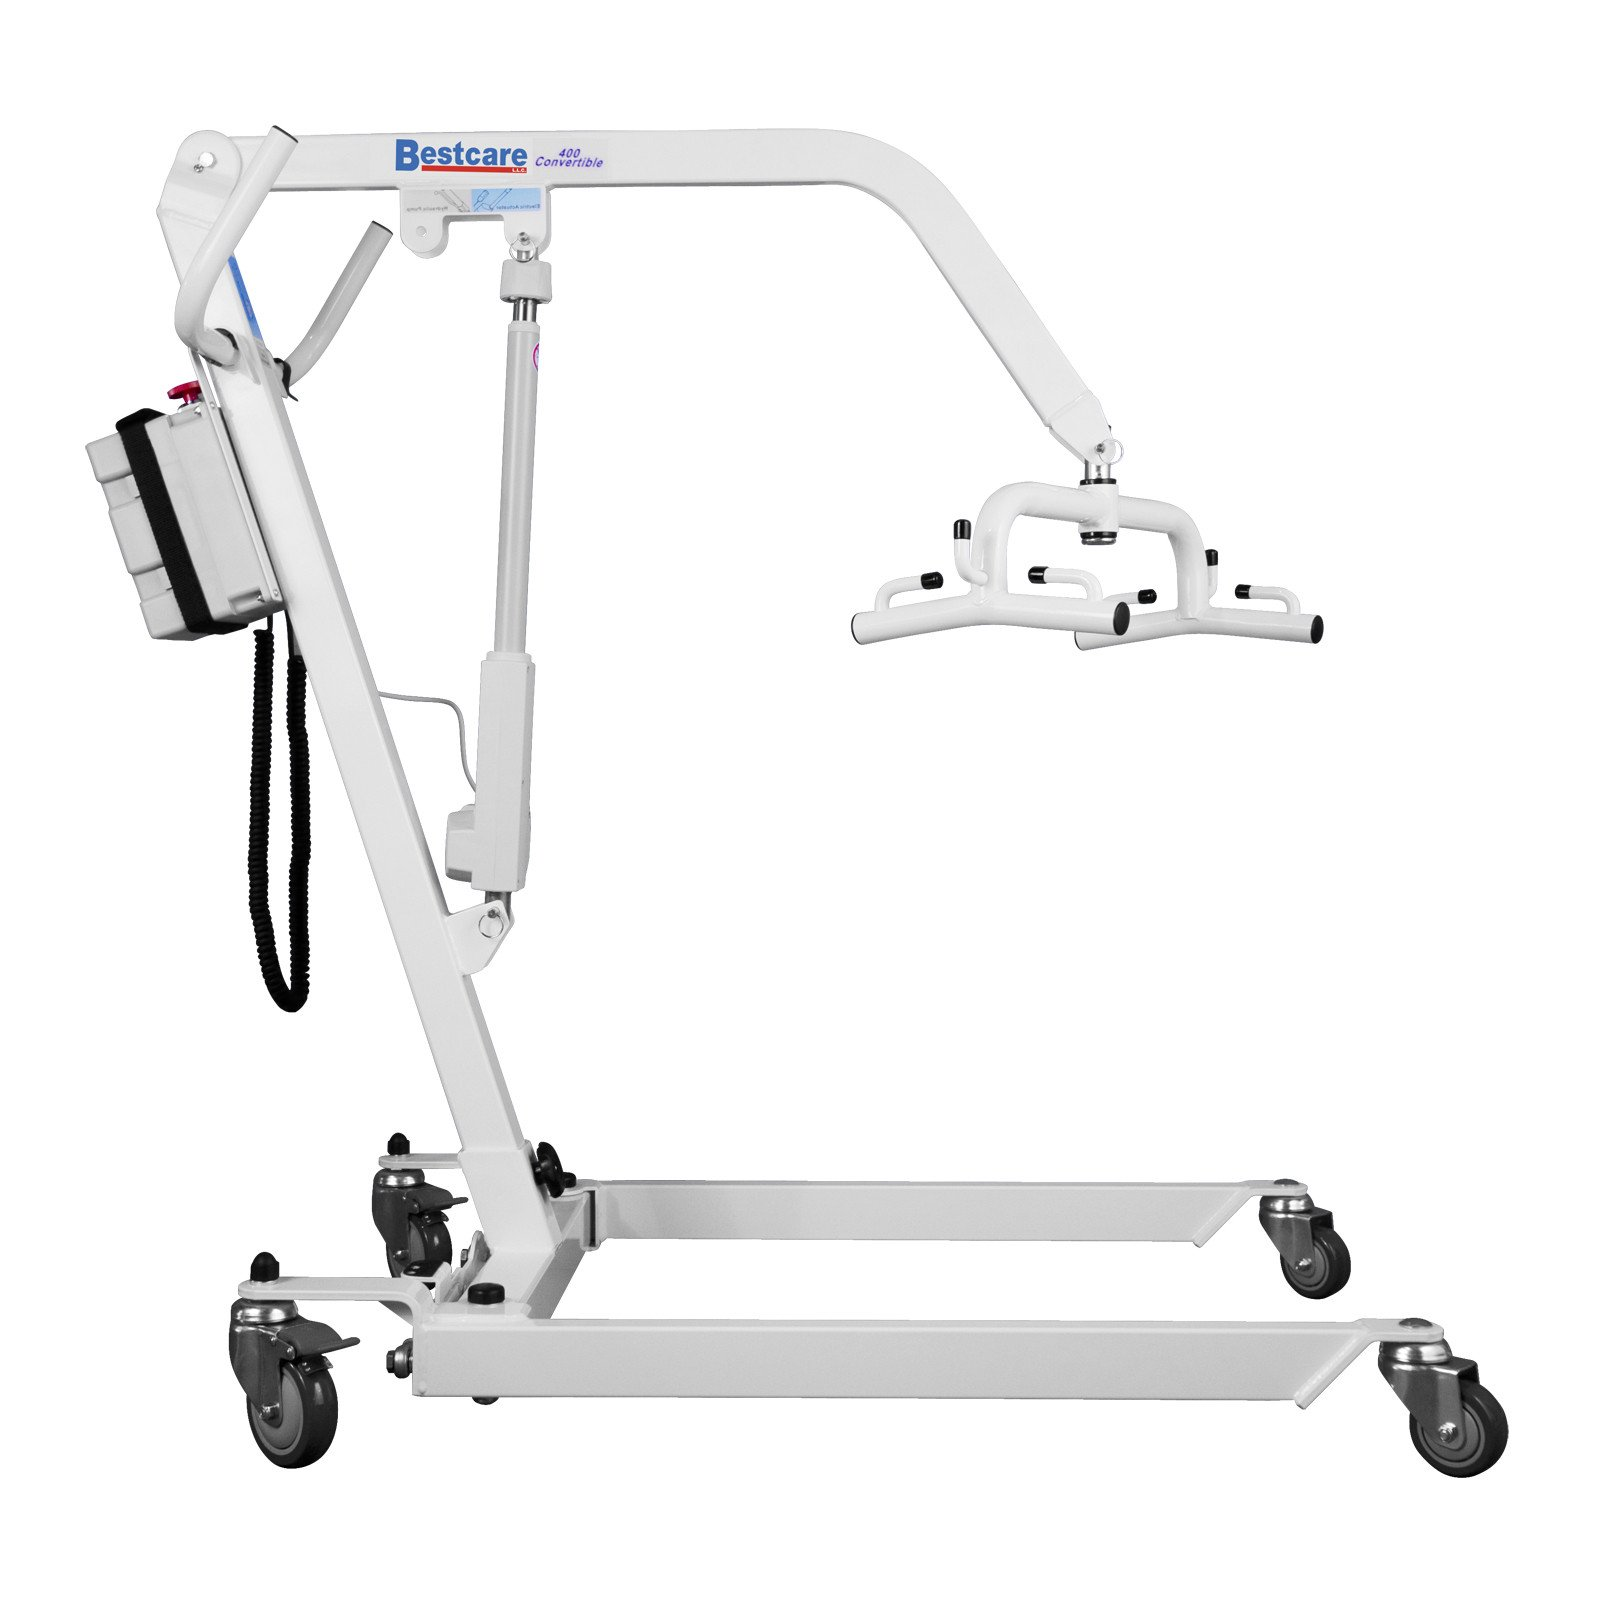 sit to stand chair lift kitchen covers dunelm bestcare bestlift genesis 400 electric